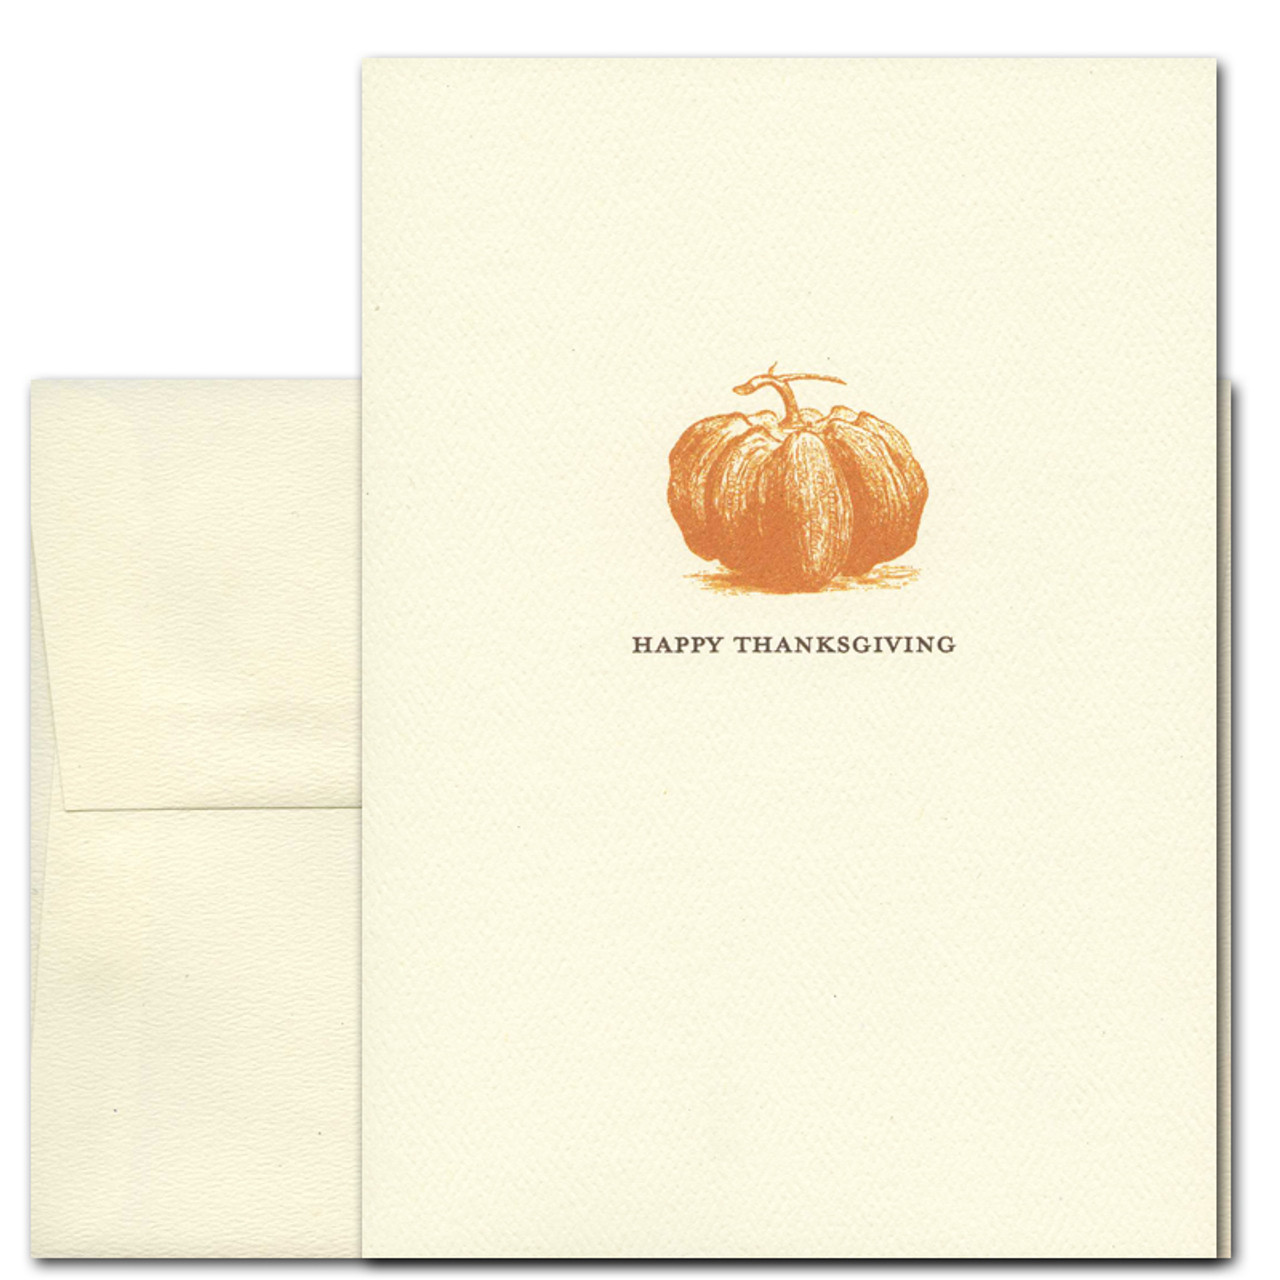 "Thanksgiving - Heirloom Pumpkin cover shows a deep orange illustration of an heirloom pumping variety and the words ""Happy Thanksgiving"""